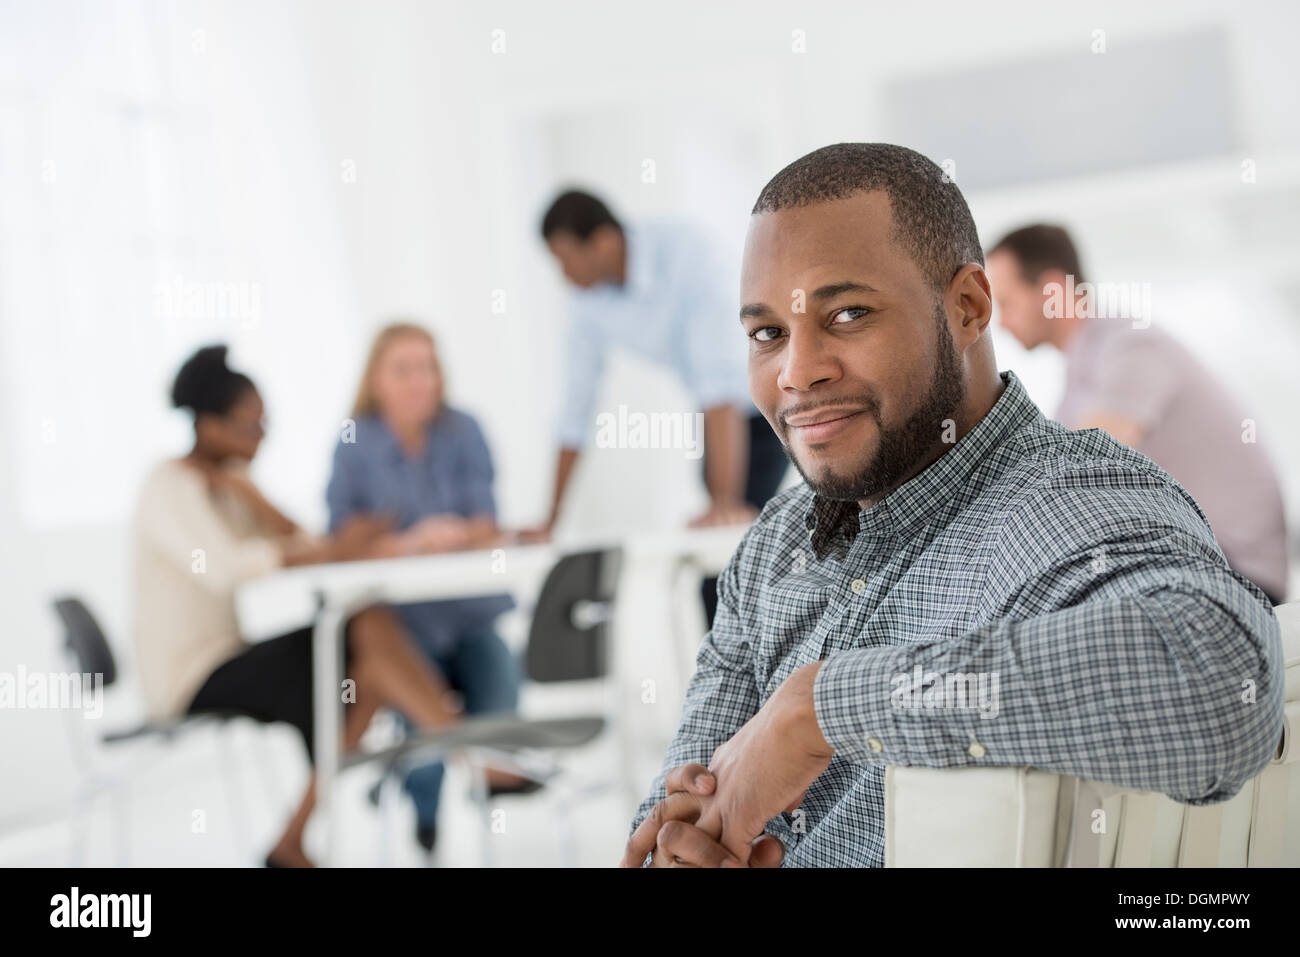 Office interior. Meeting. One person looking over her shoulder and away from the group. - Stock Image